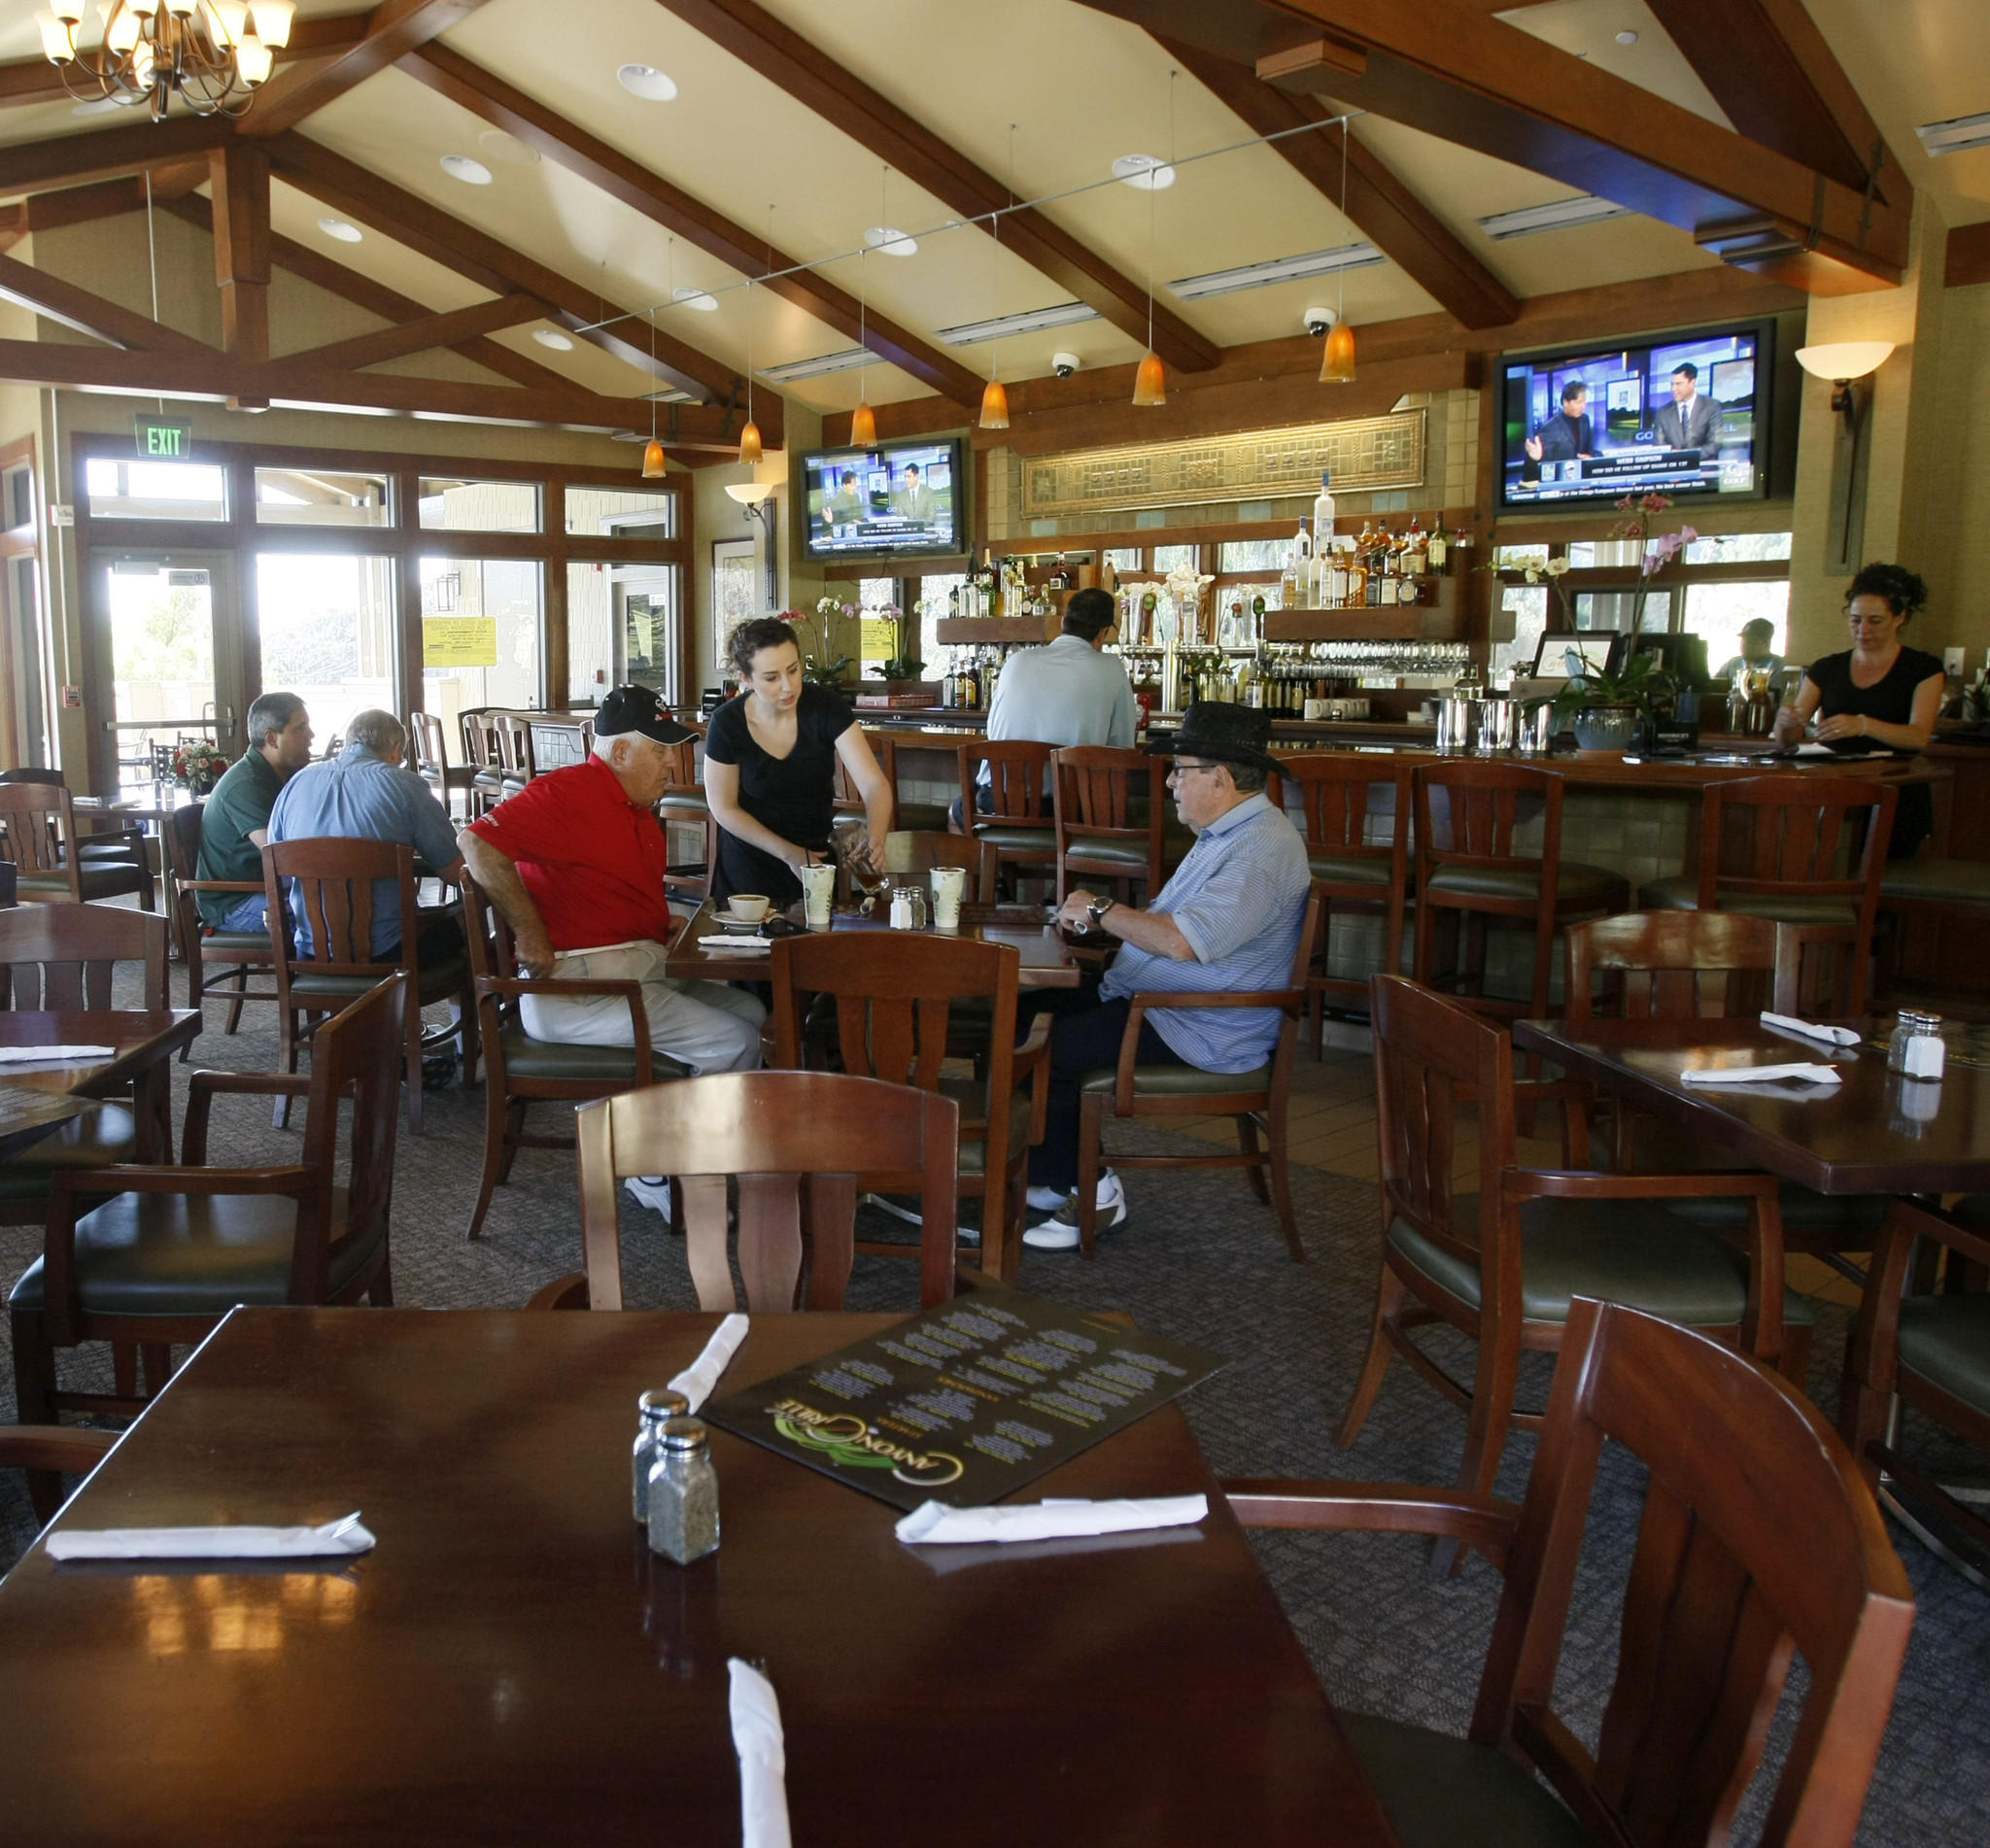 Canyon Grille, the new eatery at the DeBell at DeBell Golf Club in Burbank, opened to diners on Monday. The eatery is pictured on Friday, January 17, 2014. (Raul Roa/Staff Photographer)